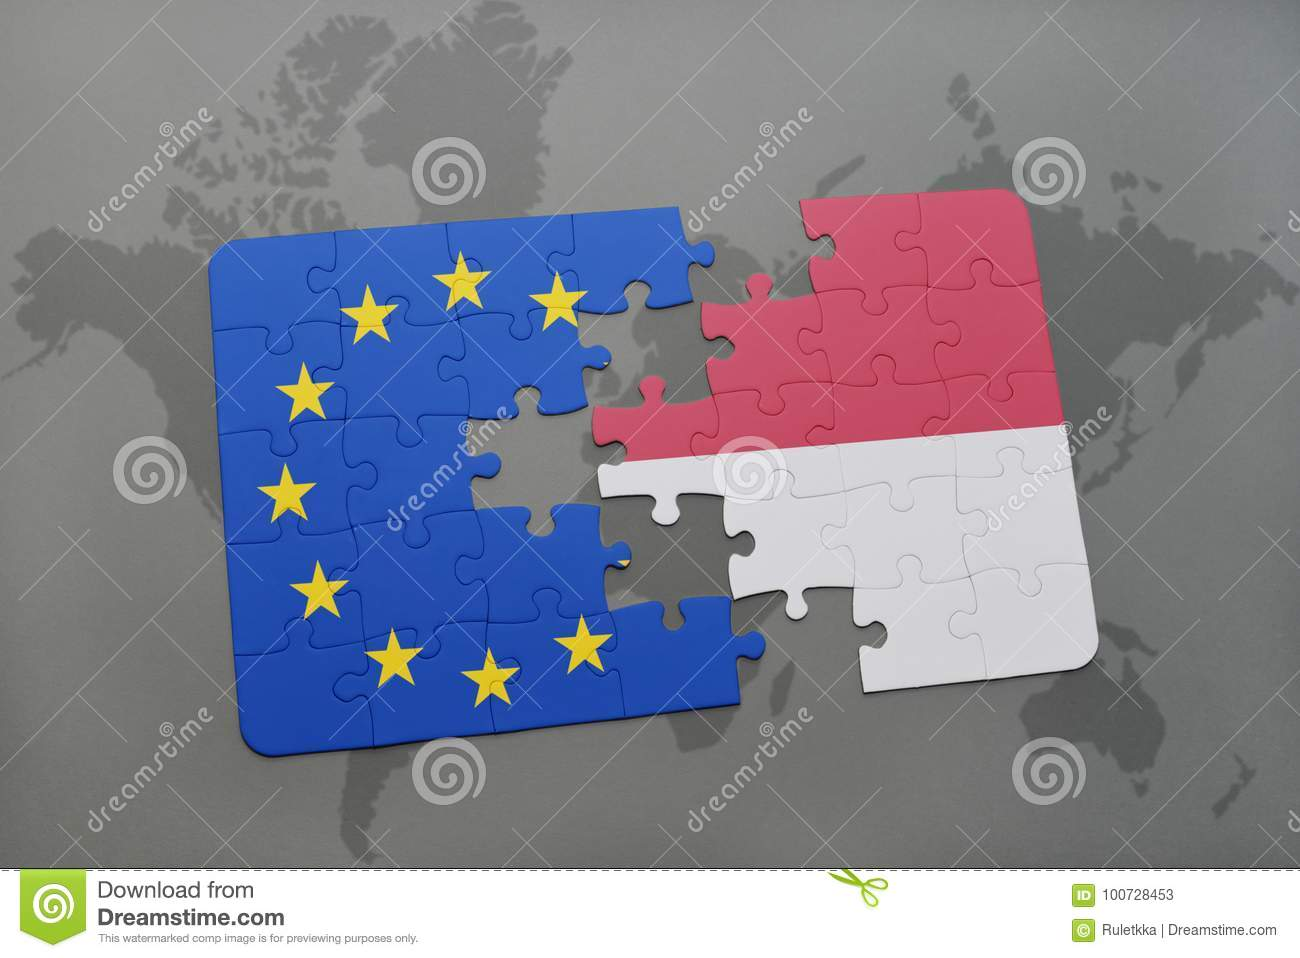 puzzle with the national flag of indonesia and european union on a world map